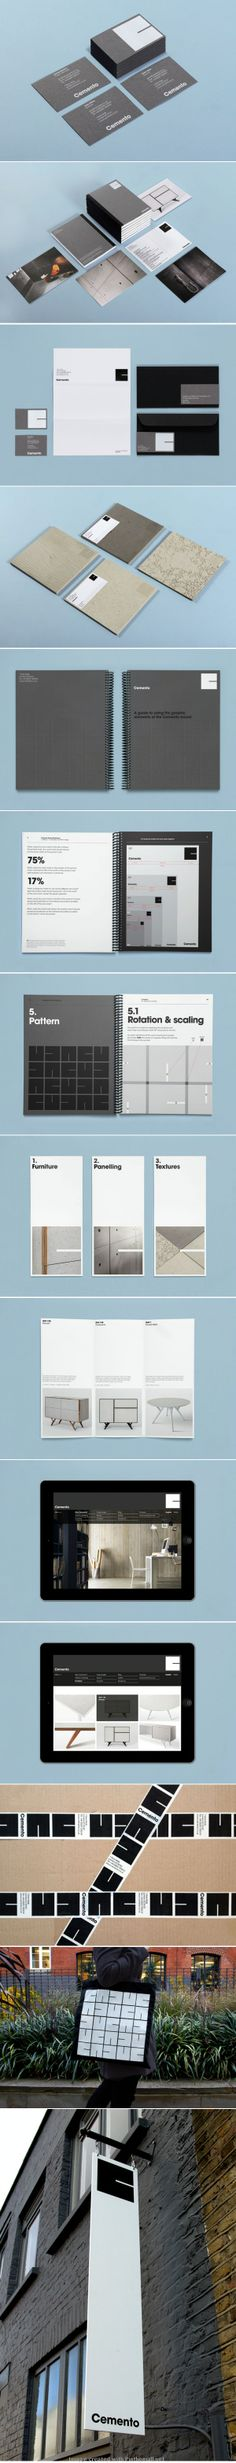 Brief: Design guidelines for a graphic identity and apply them across a set of startup deliverables for a new company, Cemento. Cemento is the UK distributor of an innovative Italian concrete veneer for wall panelling and furniture. The identity should po - created via http://pinthemall.net